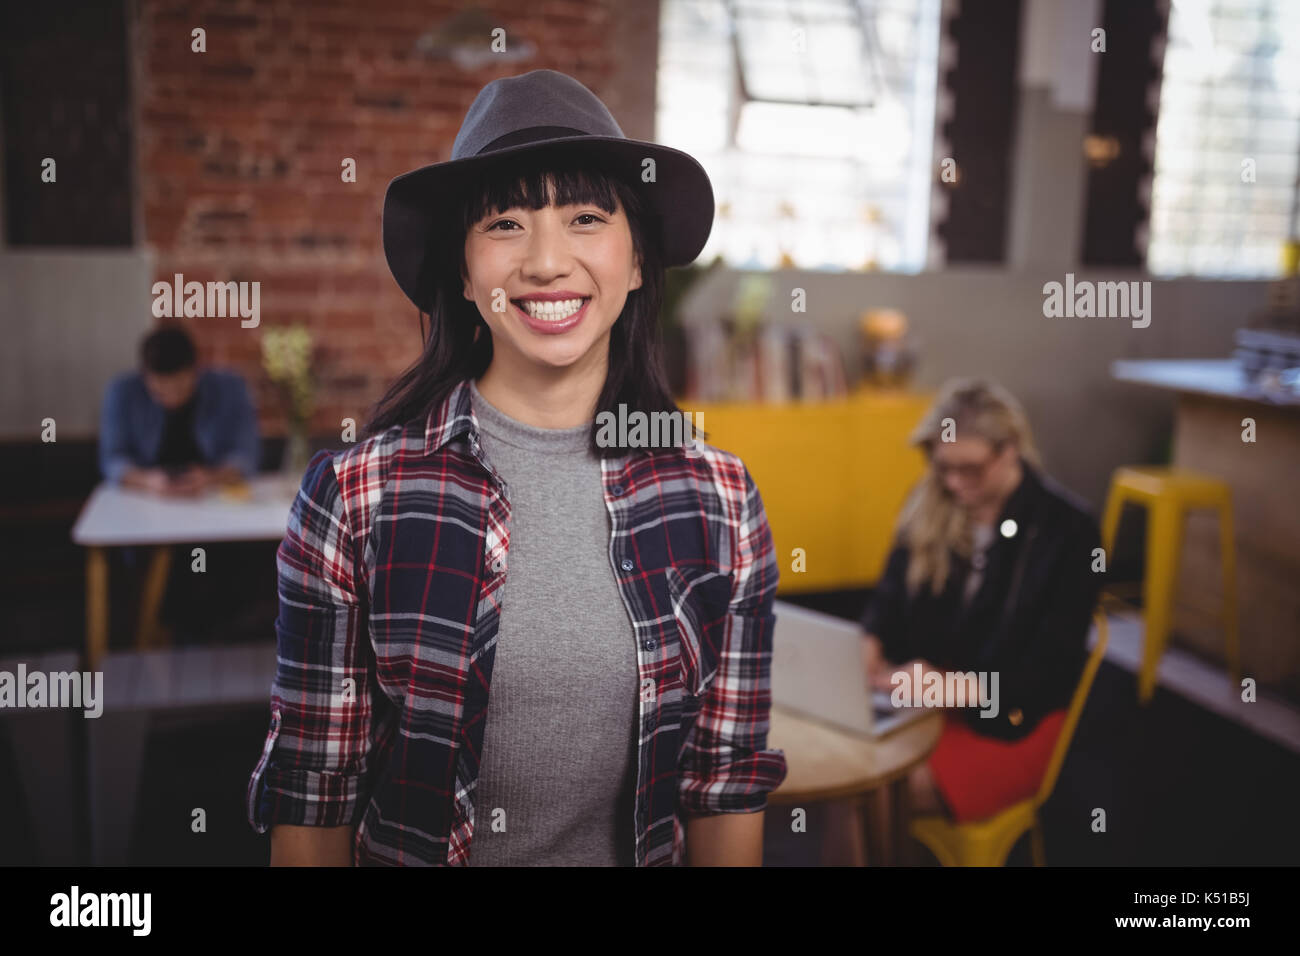 Portrait of smiling young woman wearing hat standing at coffee shop - Stock Image